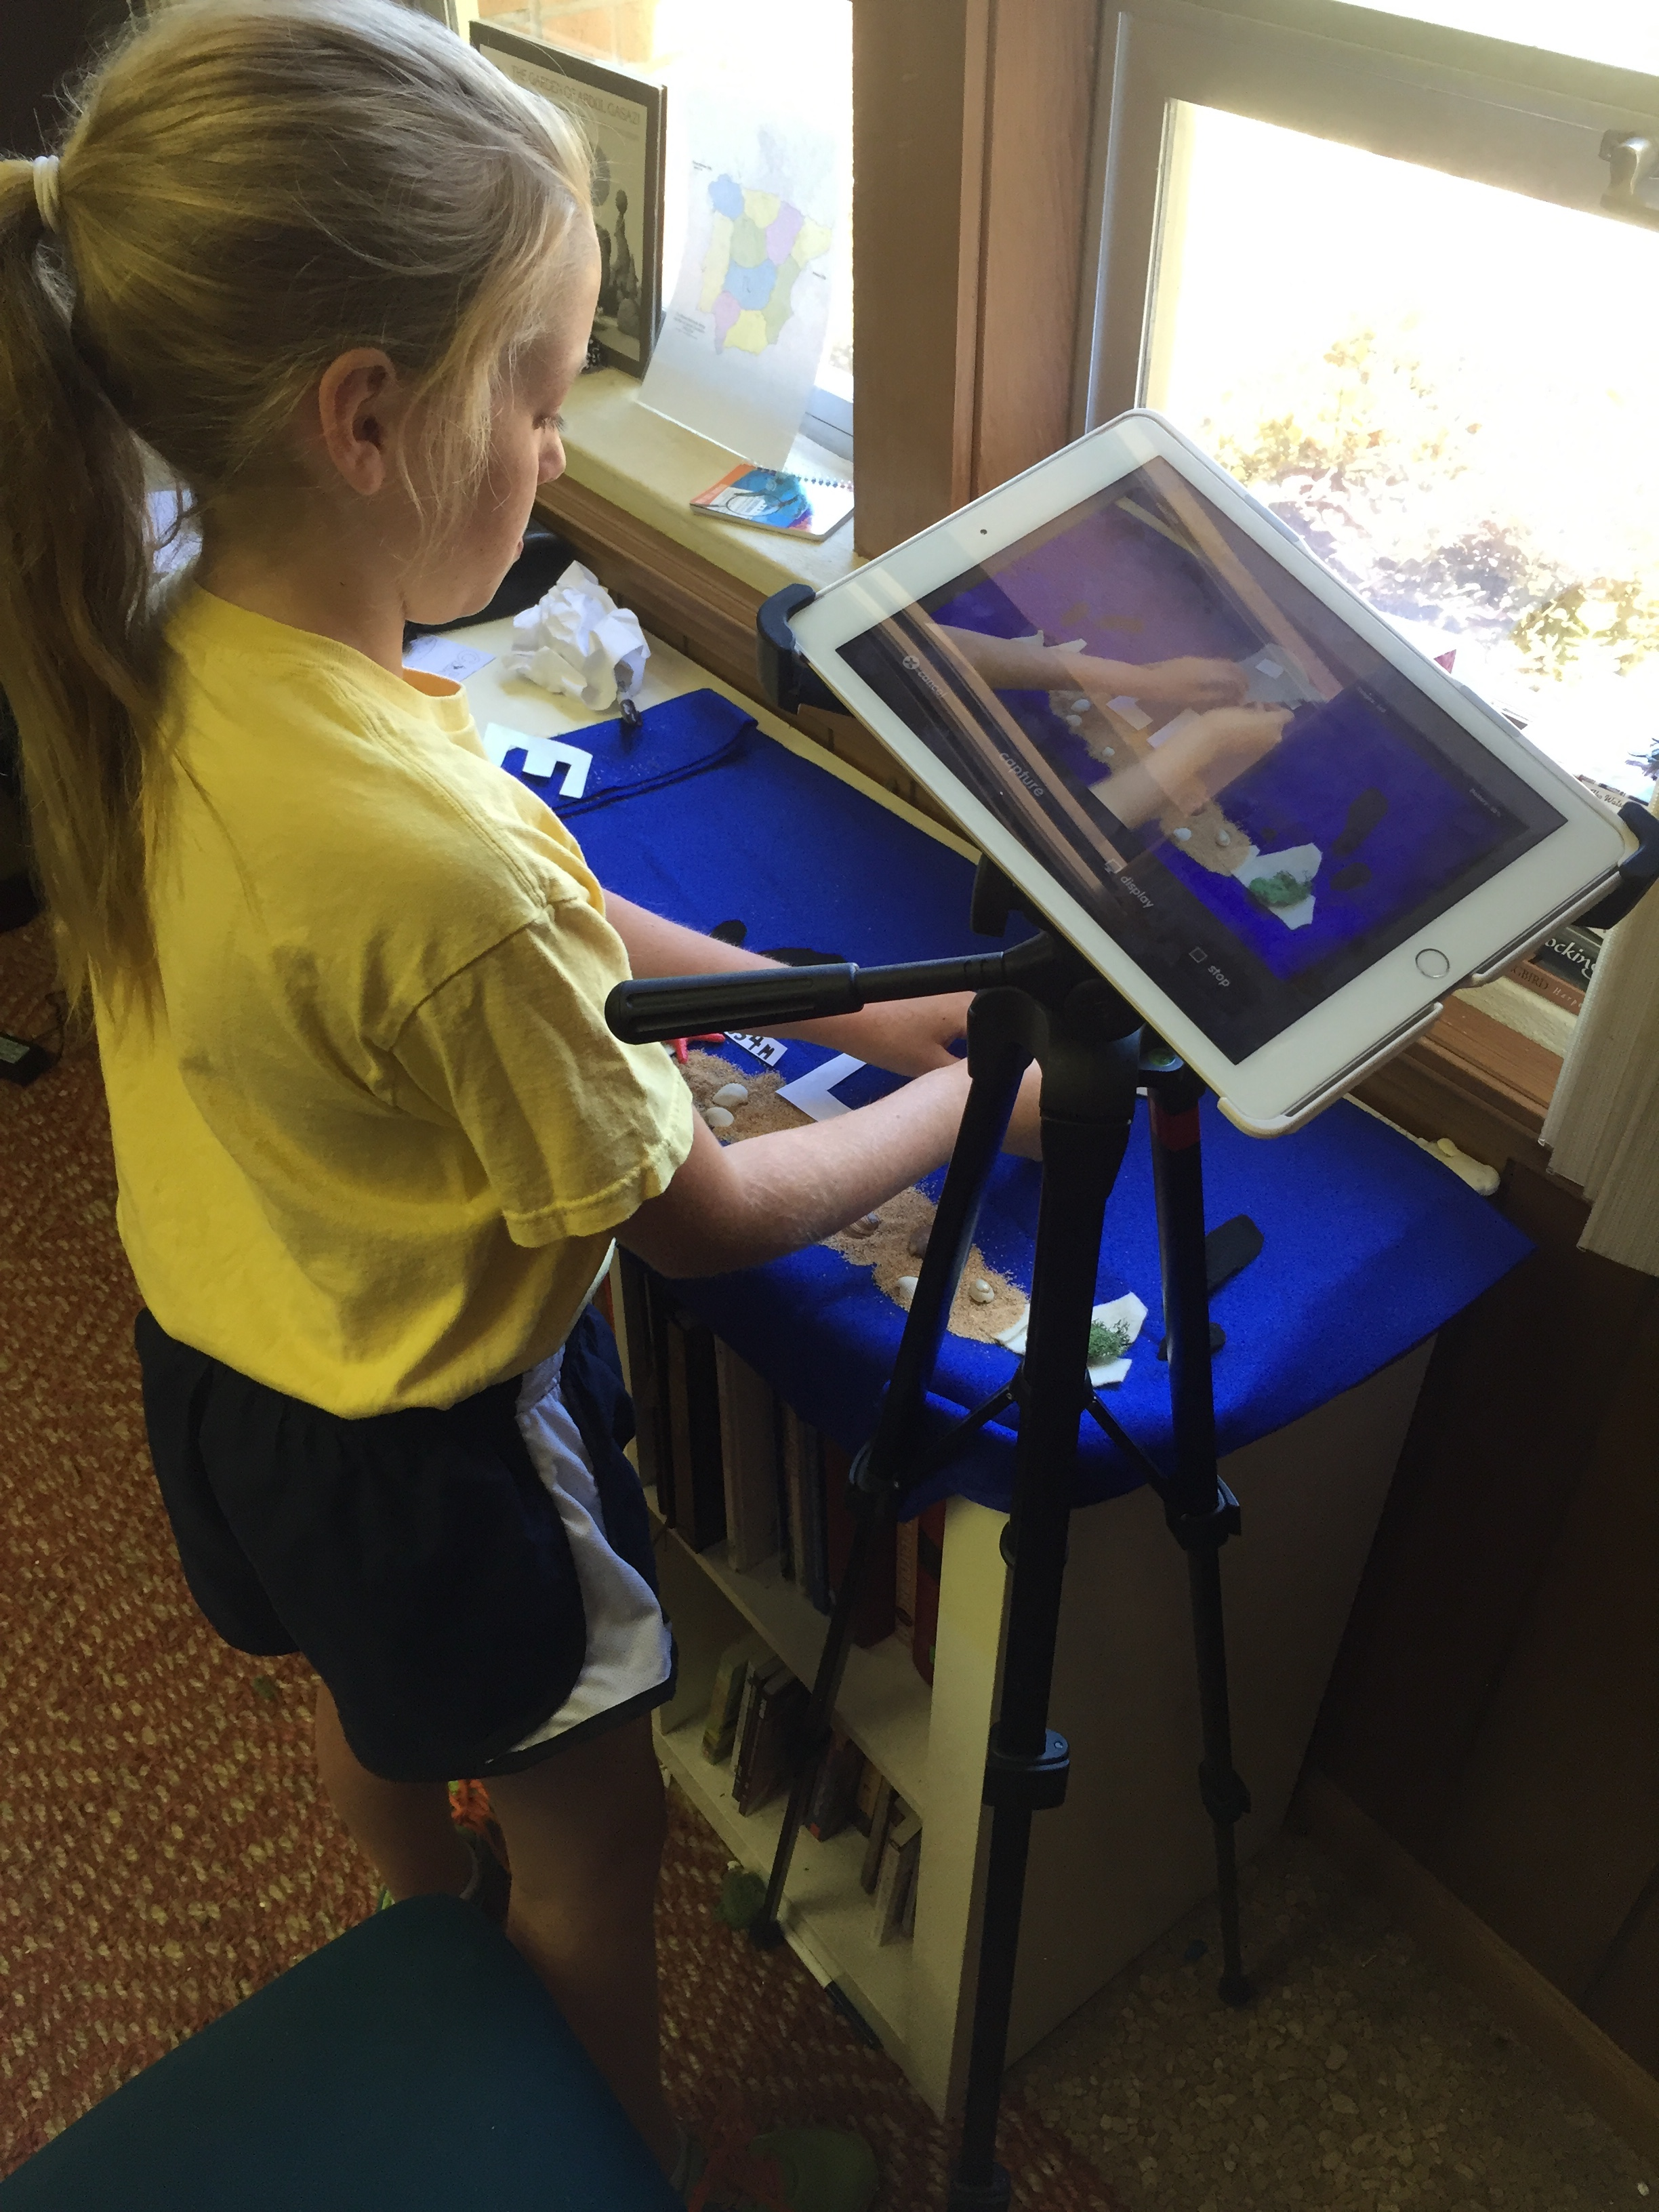 <div style='color:#000000;'><br /><br /><h2>2016 Ocean Discovery Camp. Campers made stop motion videos with an ocean theme during the first year of Ocean Discovery Camp! </h2>(c) ECOGIG</div>